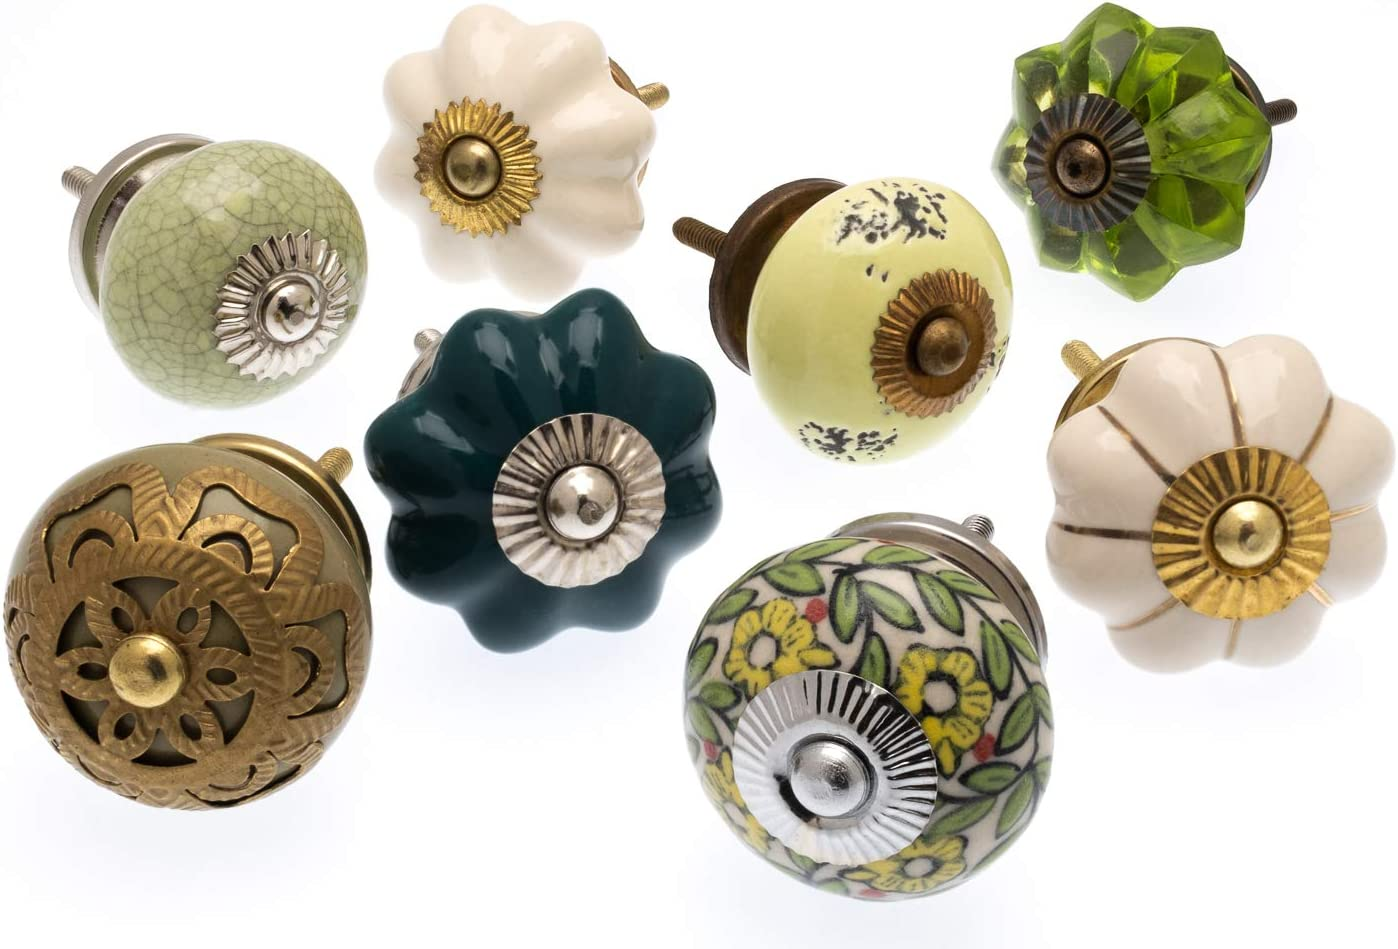 Mixed Set of 8 x Autumn Greens and Yellows Ceramic Cupboard Knobs Mango Tree TM Registered Product MG-721